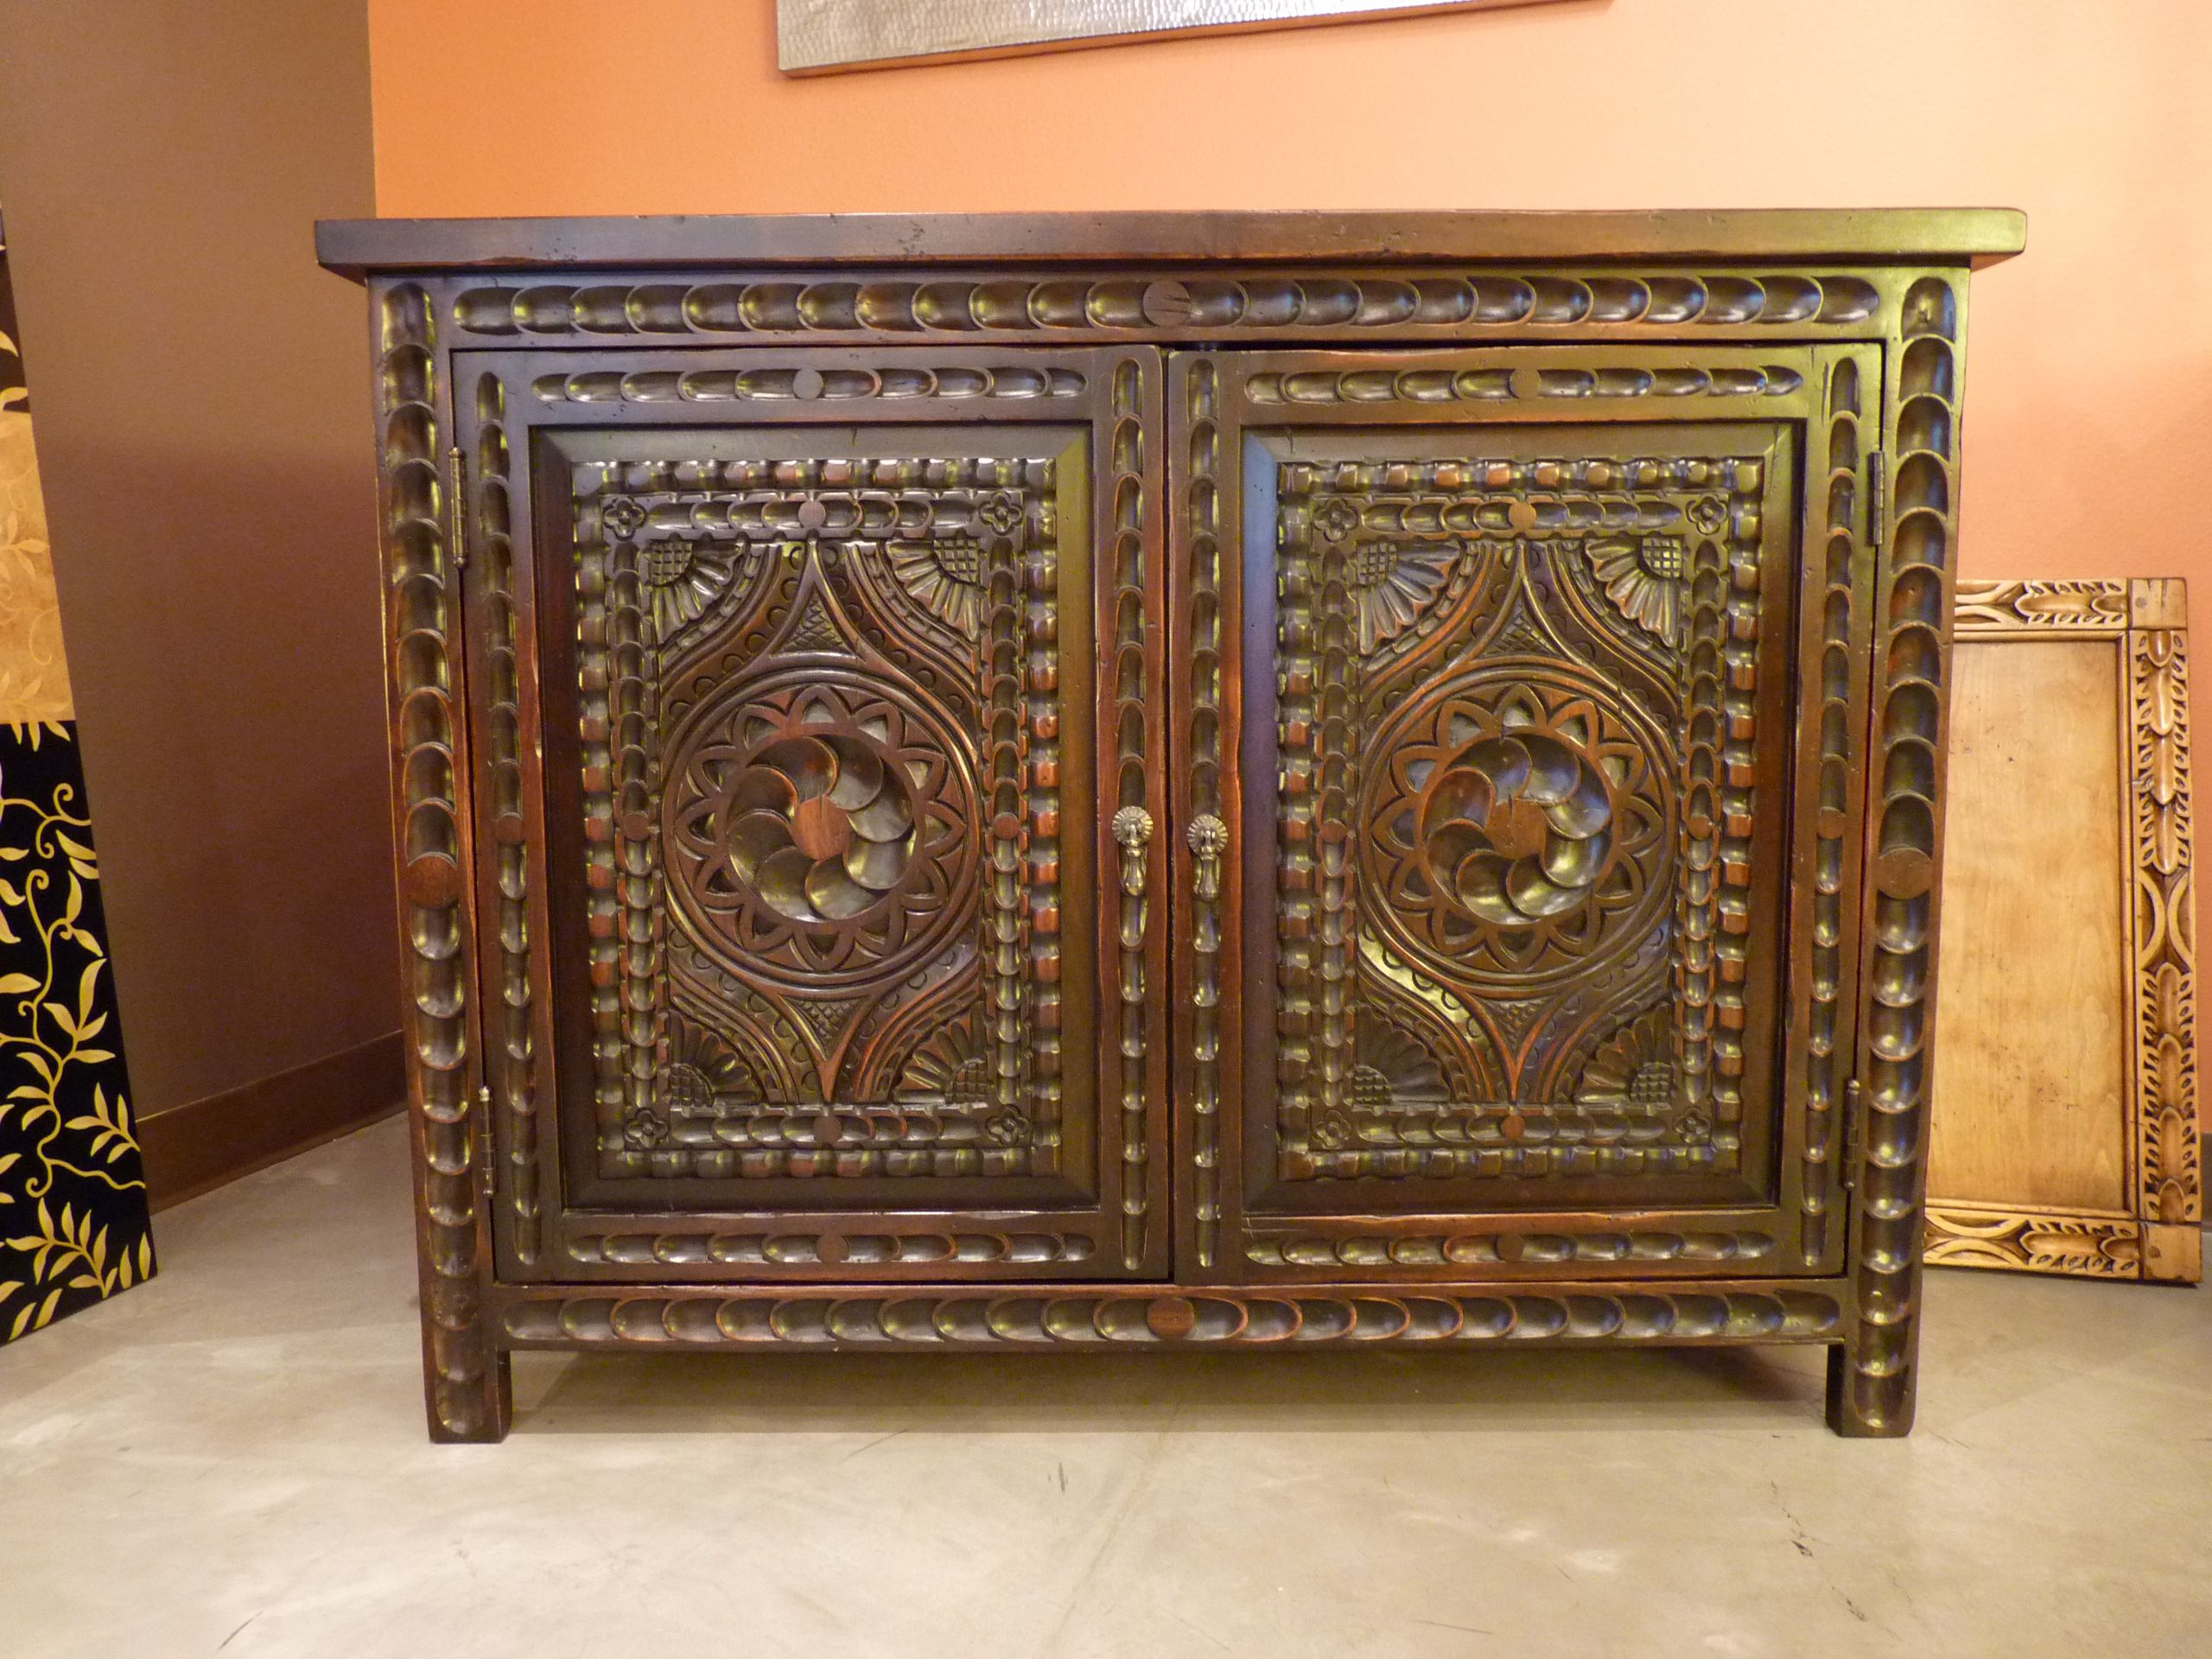 Carved Custom Cabinets Furniture Vanity Spanish Colonial Revival Style Santa Fe New Mexico 26 Vintage Door Styles From Simple To Complex